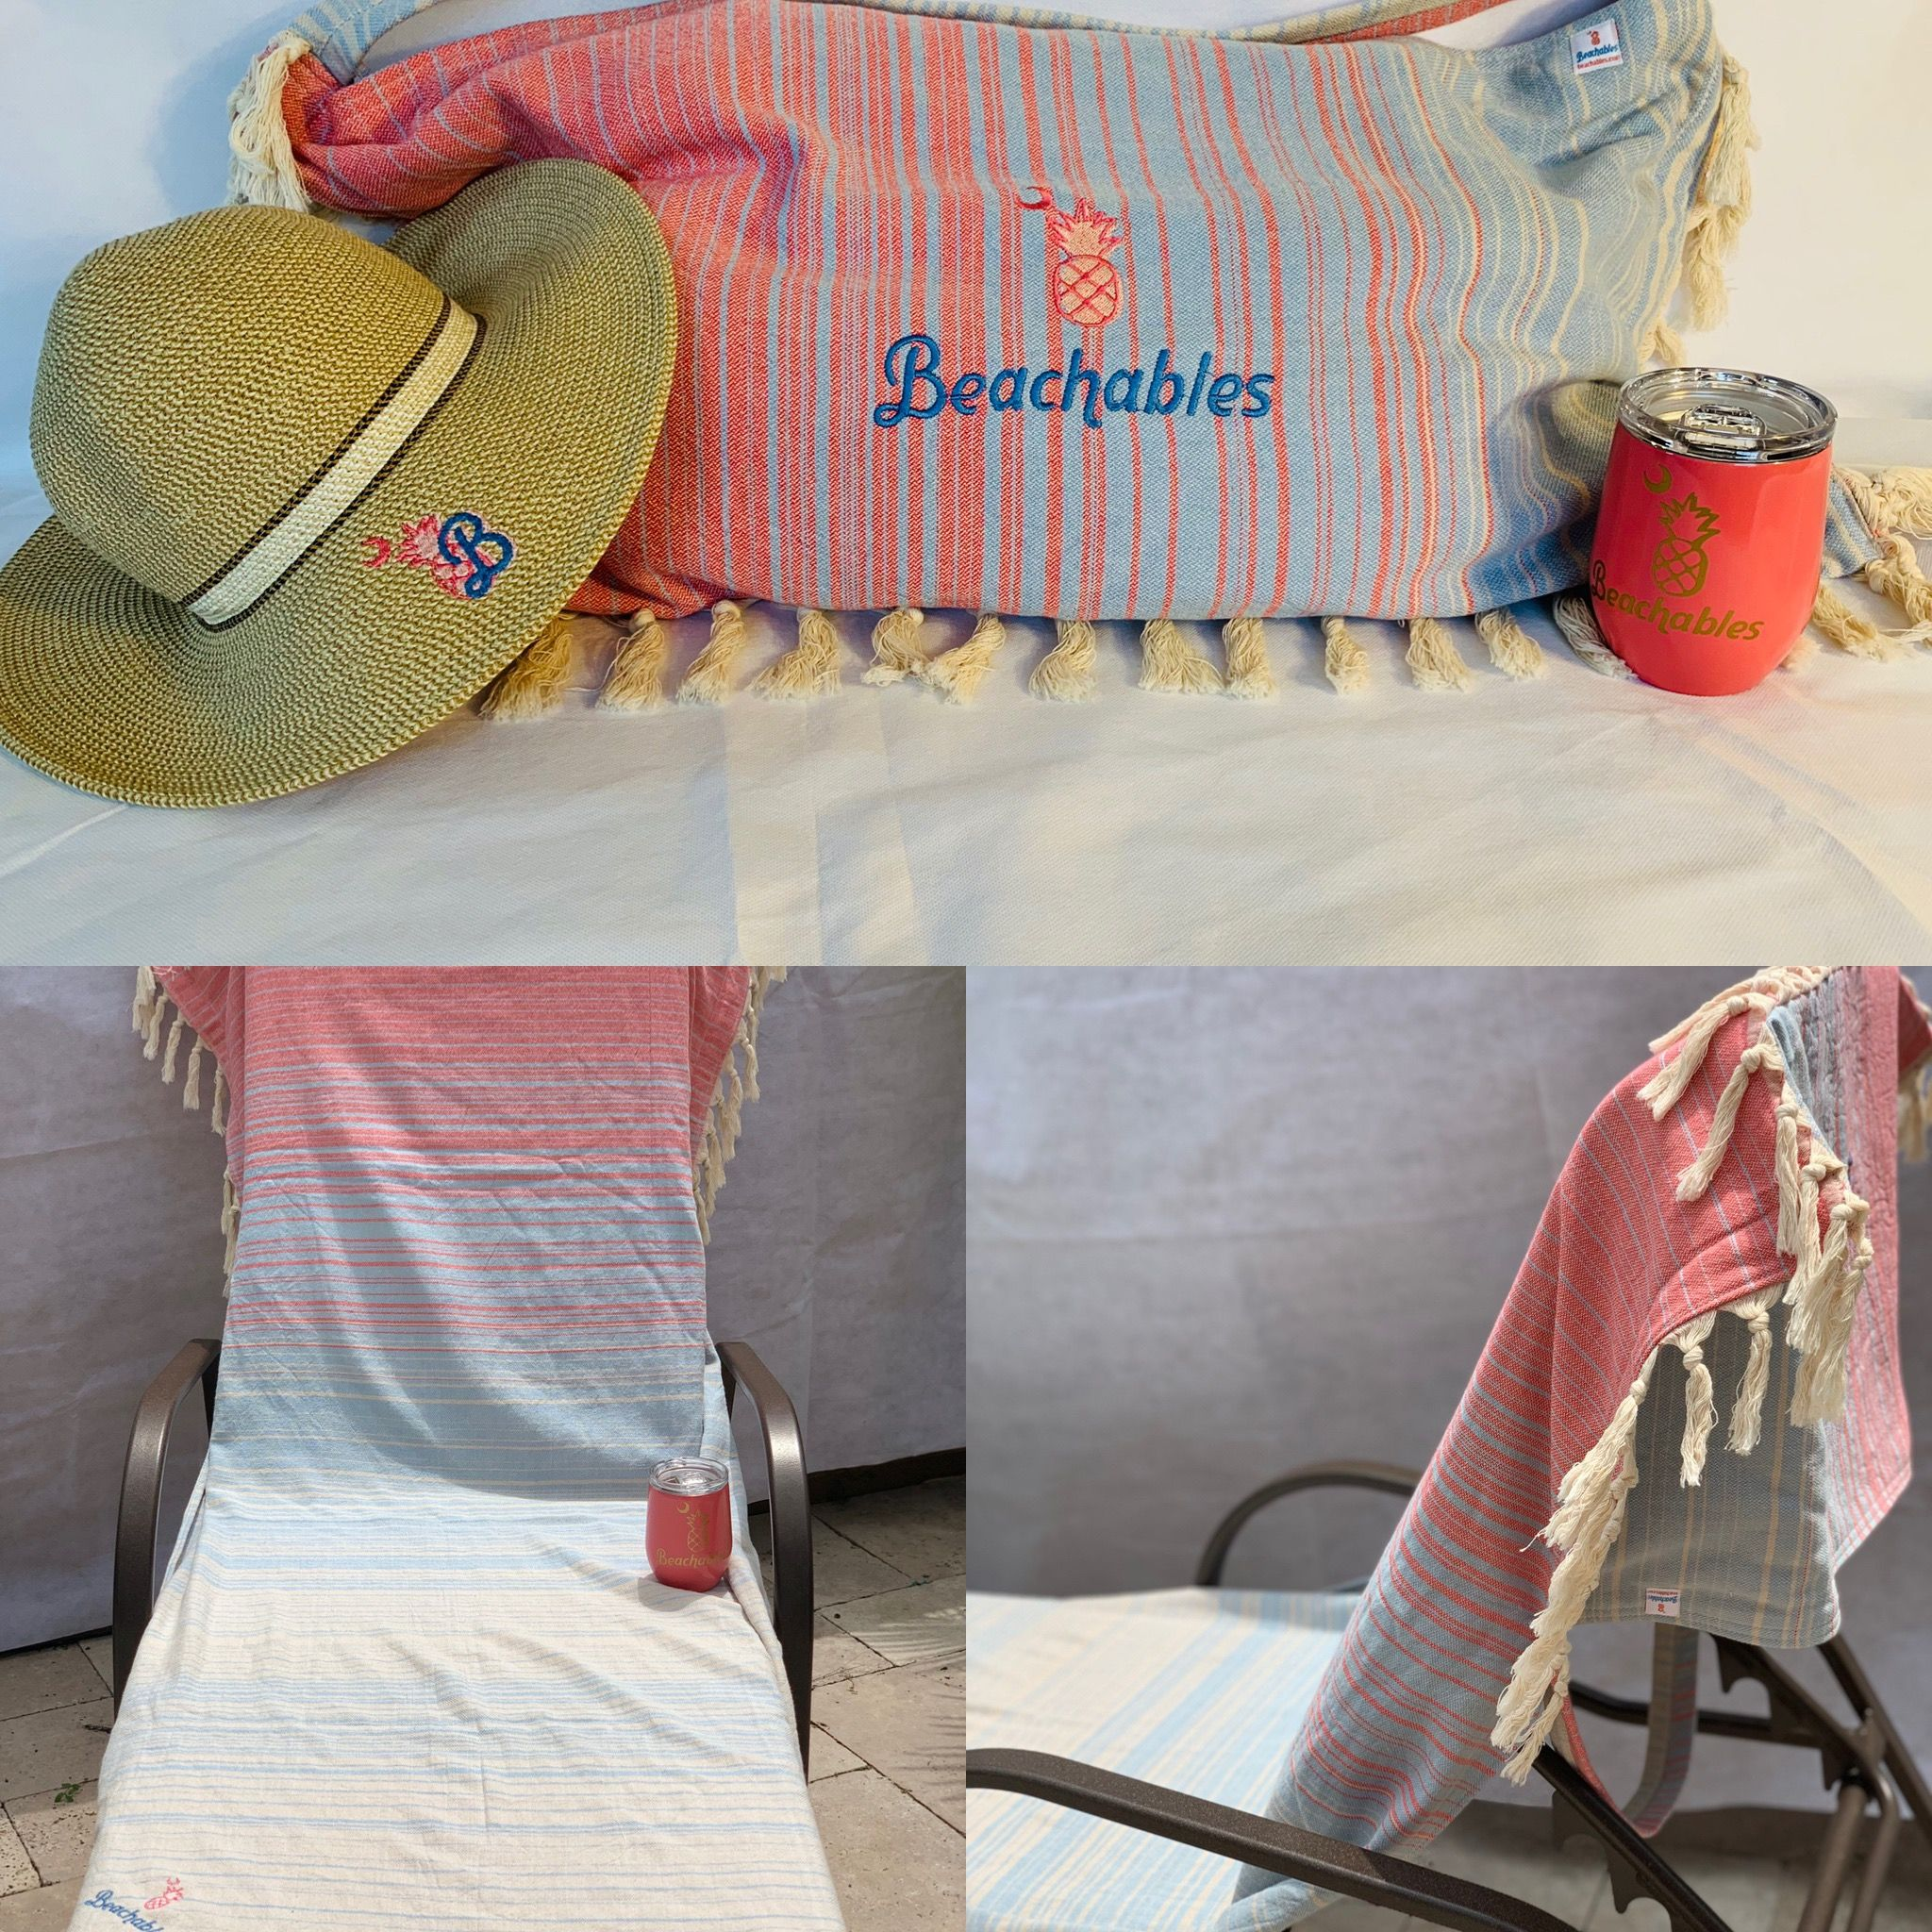 Beachables Are Not Just Your Big Beautiful Beach Bag But Also